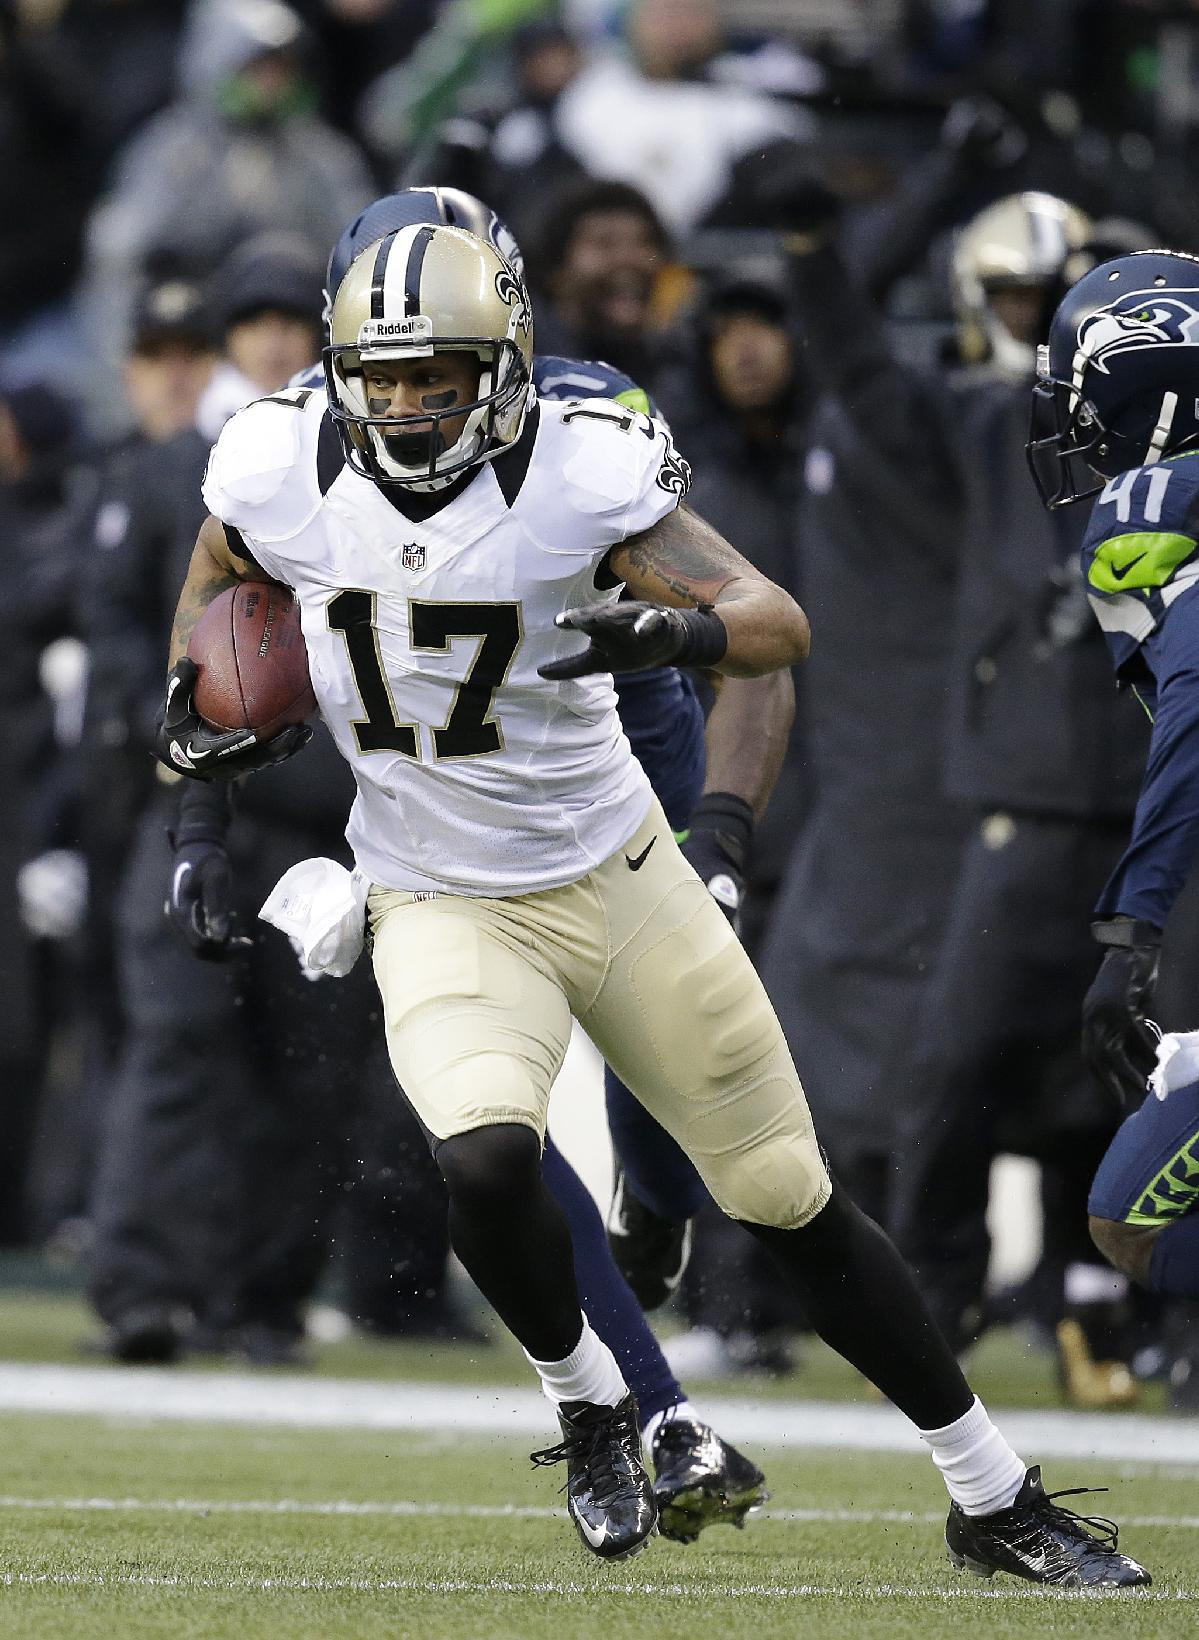 New Orleans Saints wide receiver Robert Meachem (17) against the Seattle Seahawks during an NFC divisional playoff NFL football game in Seattle, Saturday, Jan. 11, 2014